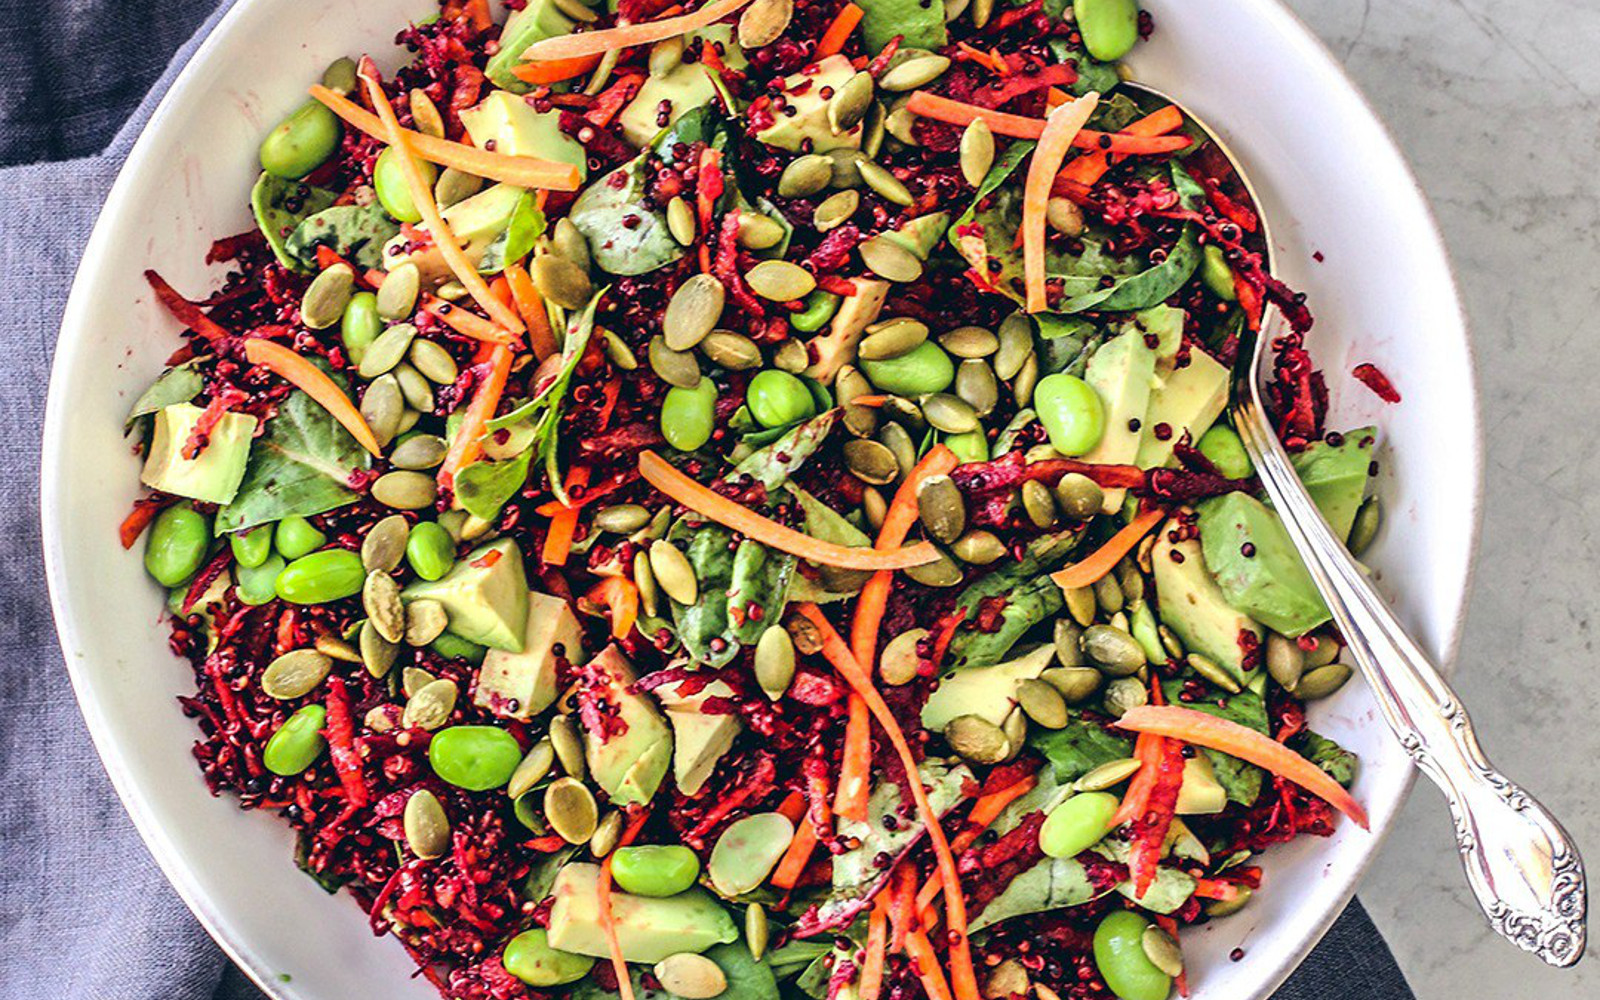 Bright Beet Salad With Quinoa and Toasted Pumpkin Seeds